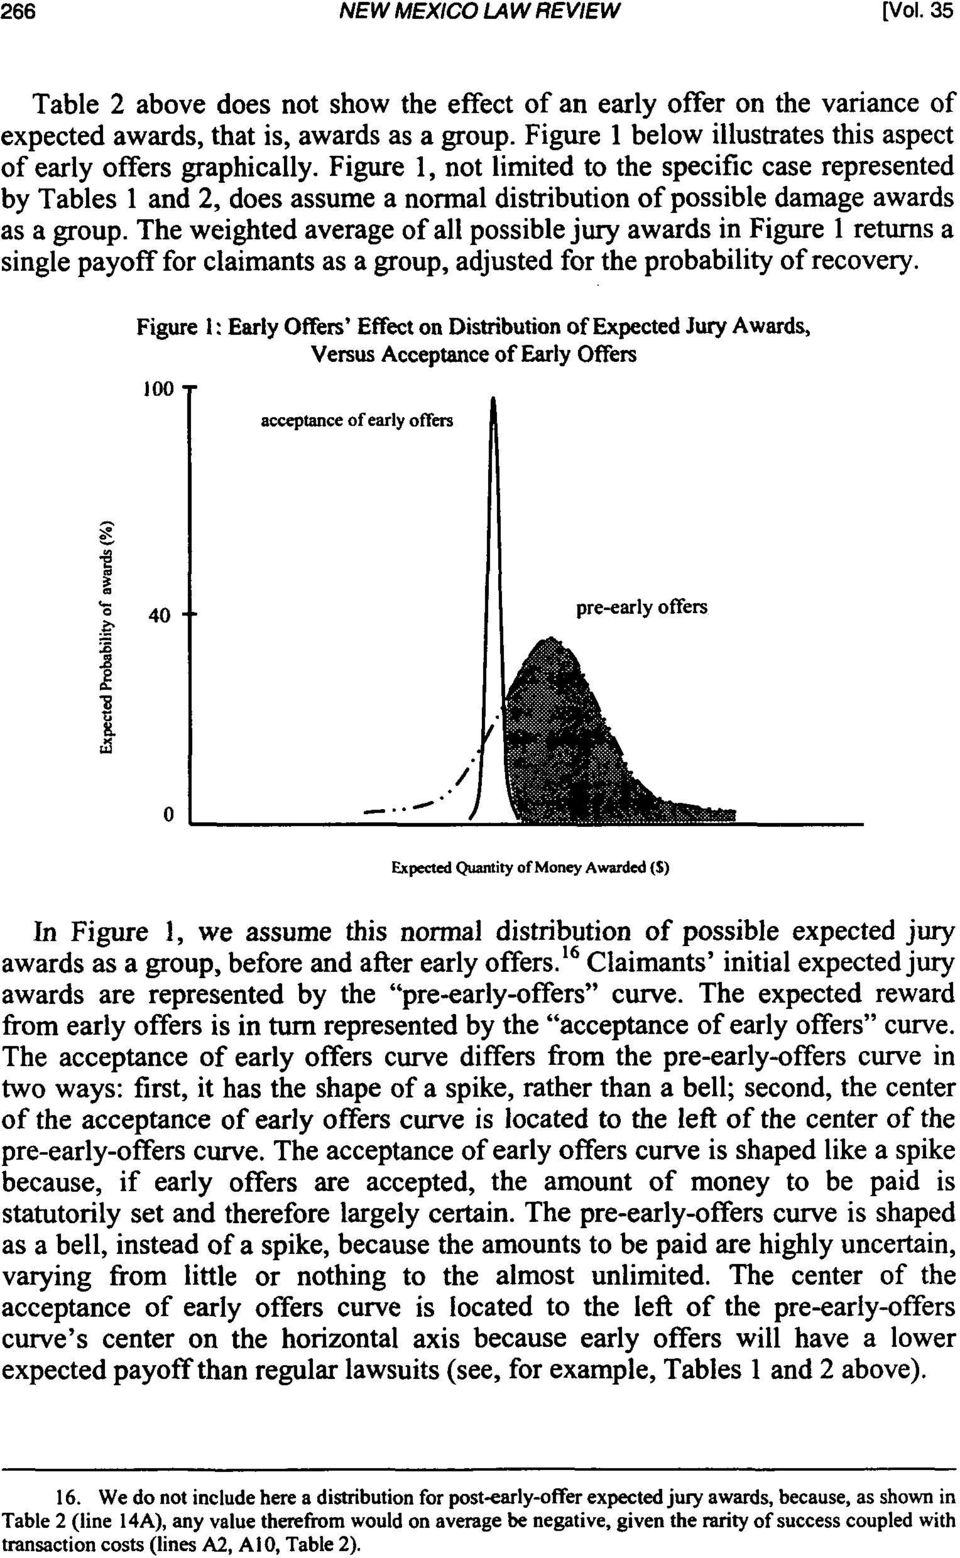 Figure 1, not limited to the specific case represented by Tables 1 and 2, does assume a normal distribution of possible damage awards as a group.